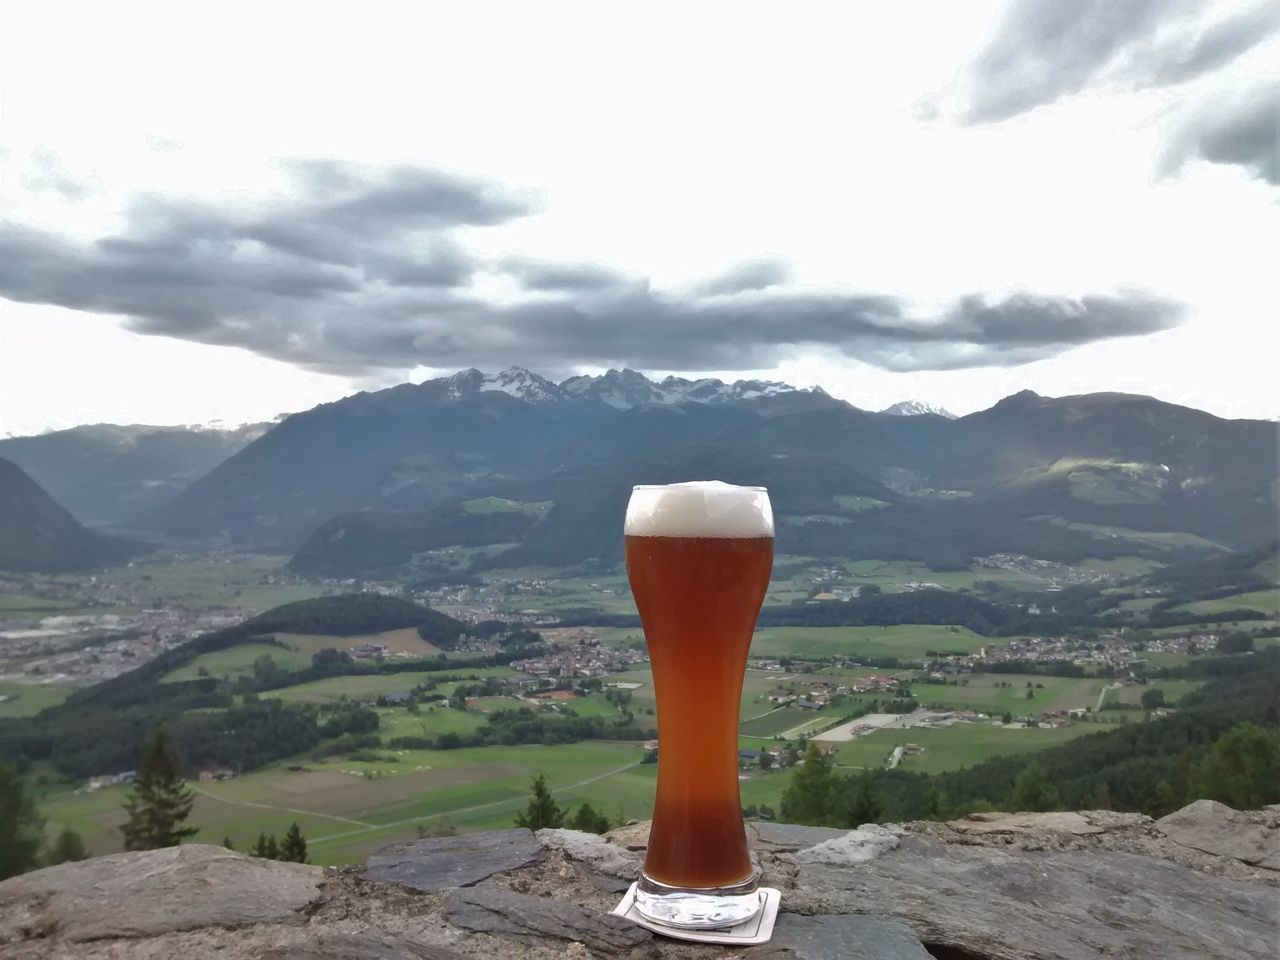 mountain, mountain range, nature, drink, landscape, beauty in nature, beer glass, no people, scenics, cold temperature, sky, alcohol, day, outdoors, freshness, frothy drink, tree, close-up